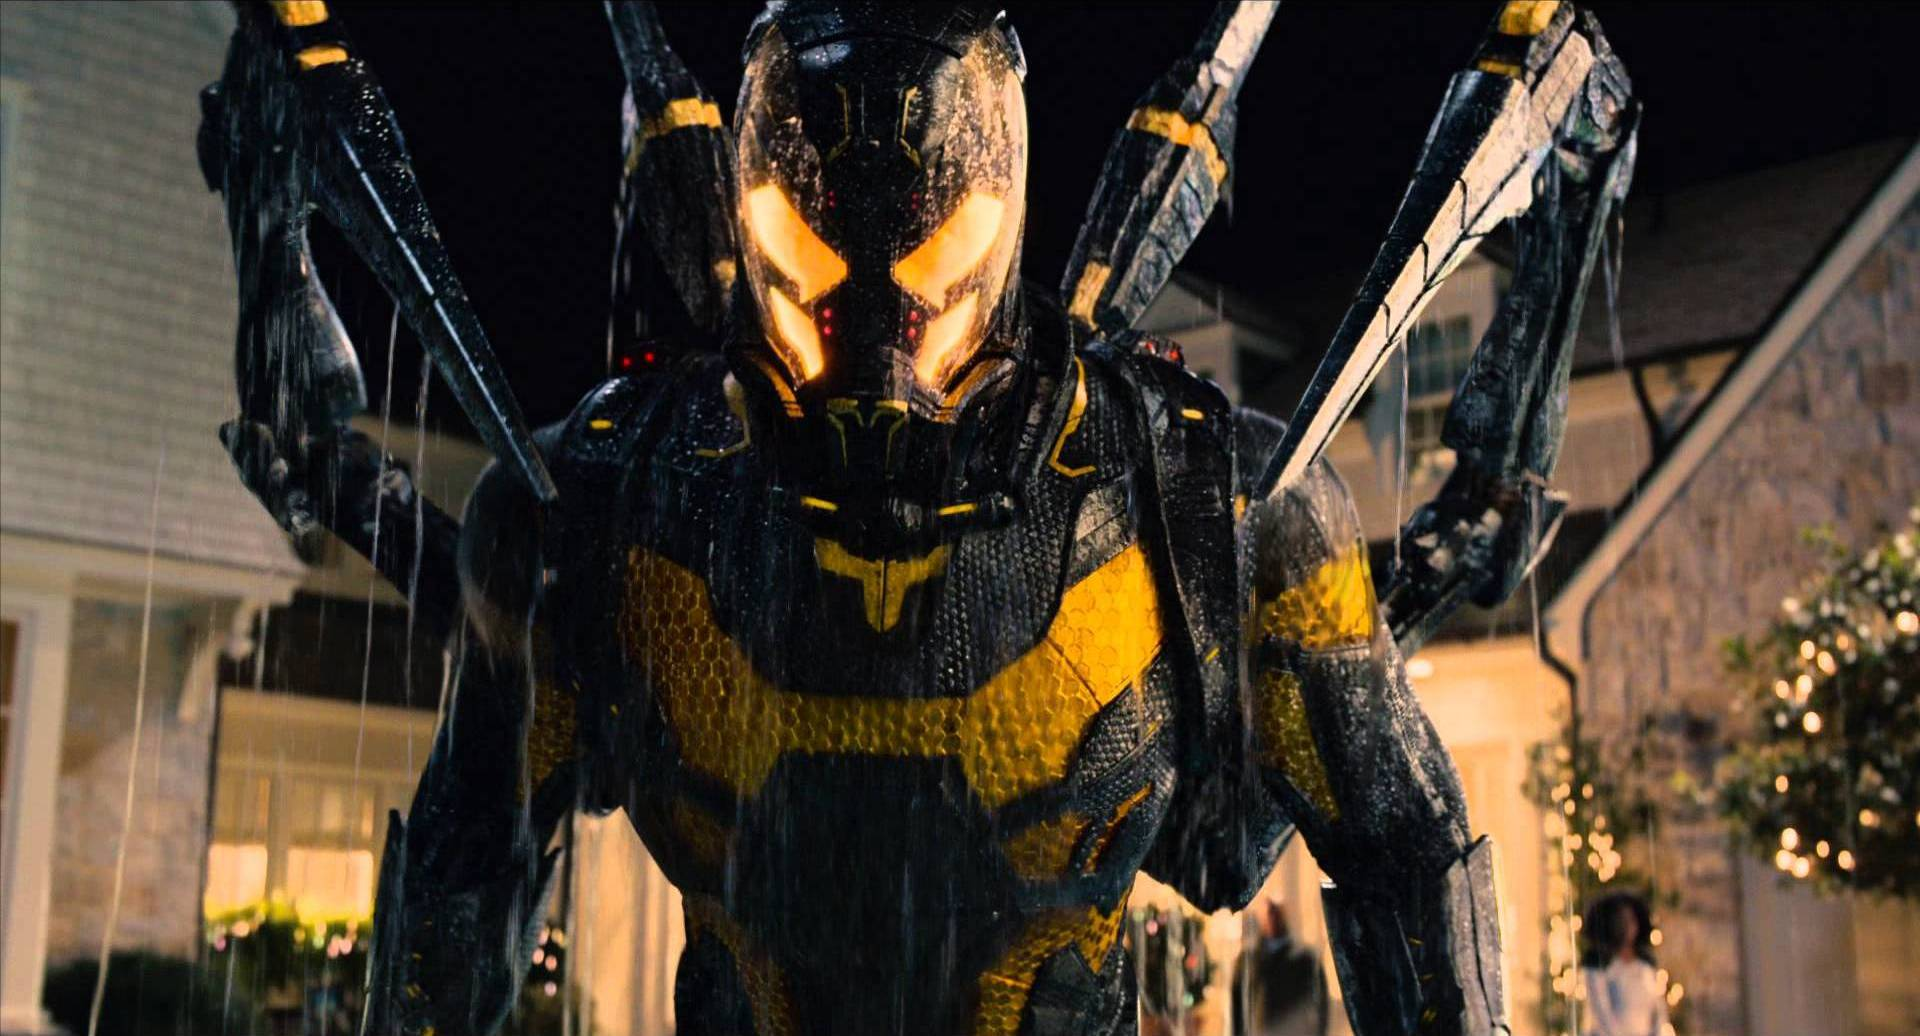 http://vignette2.wikia.nocookie.net/marvelcinematicuniverse/images/2/2d/Scary_Yellowjacket.jpg/revision/latest?cb=20150726021126